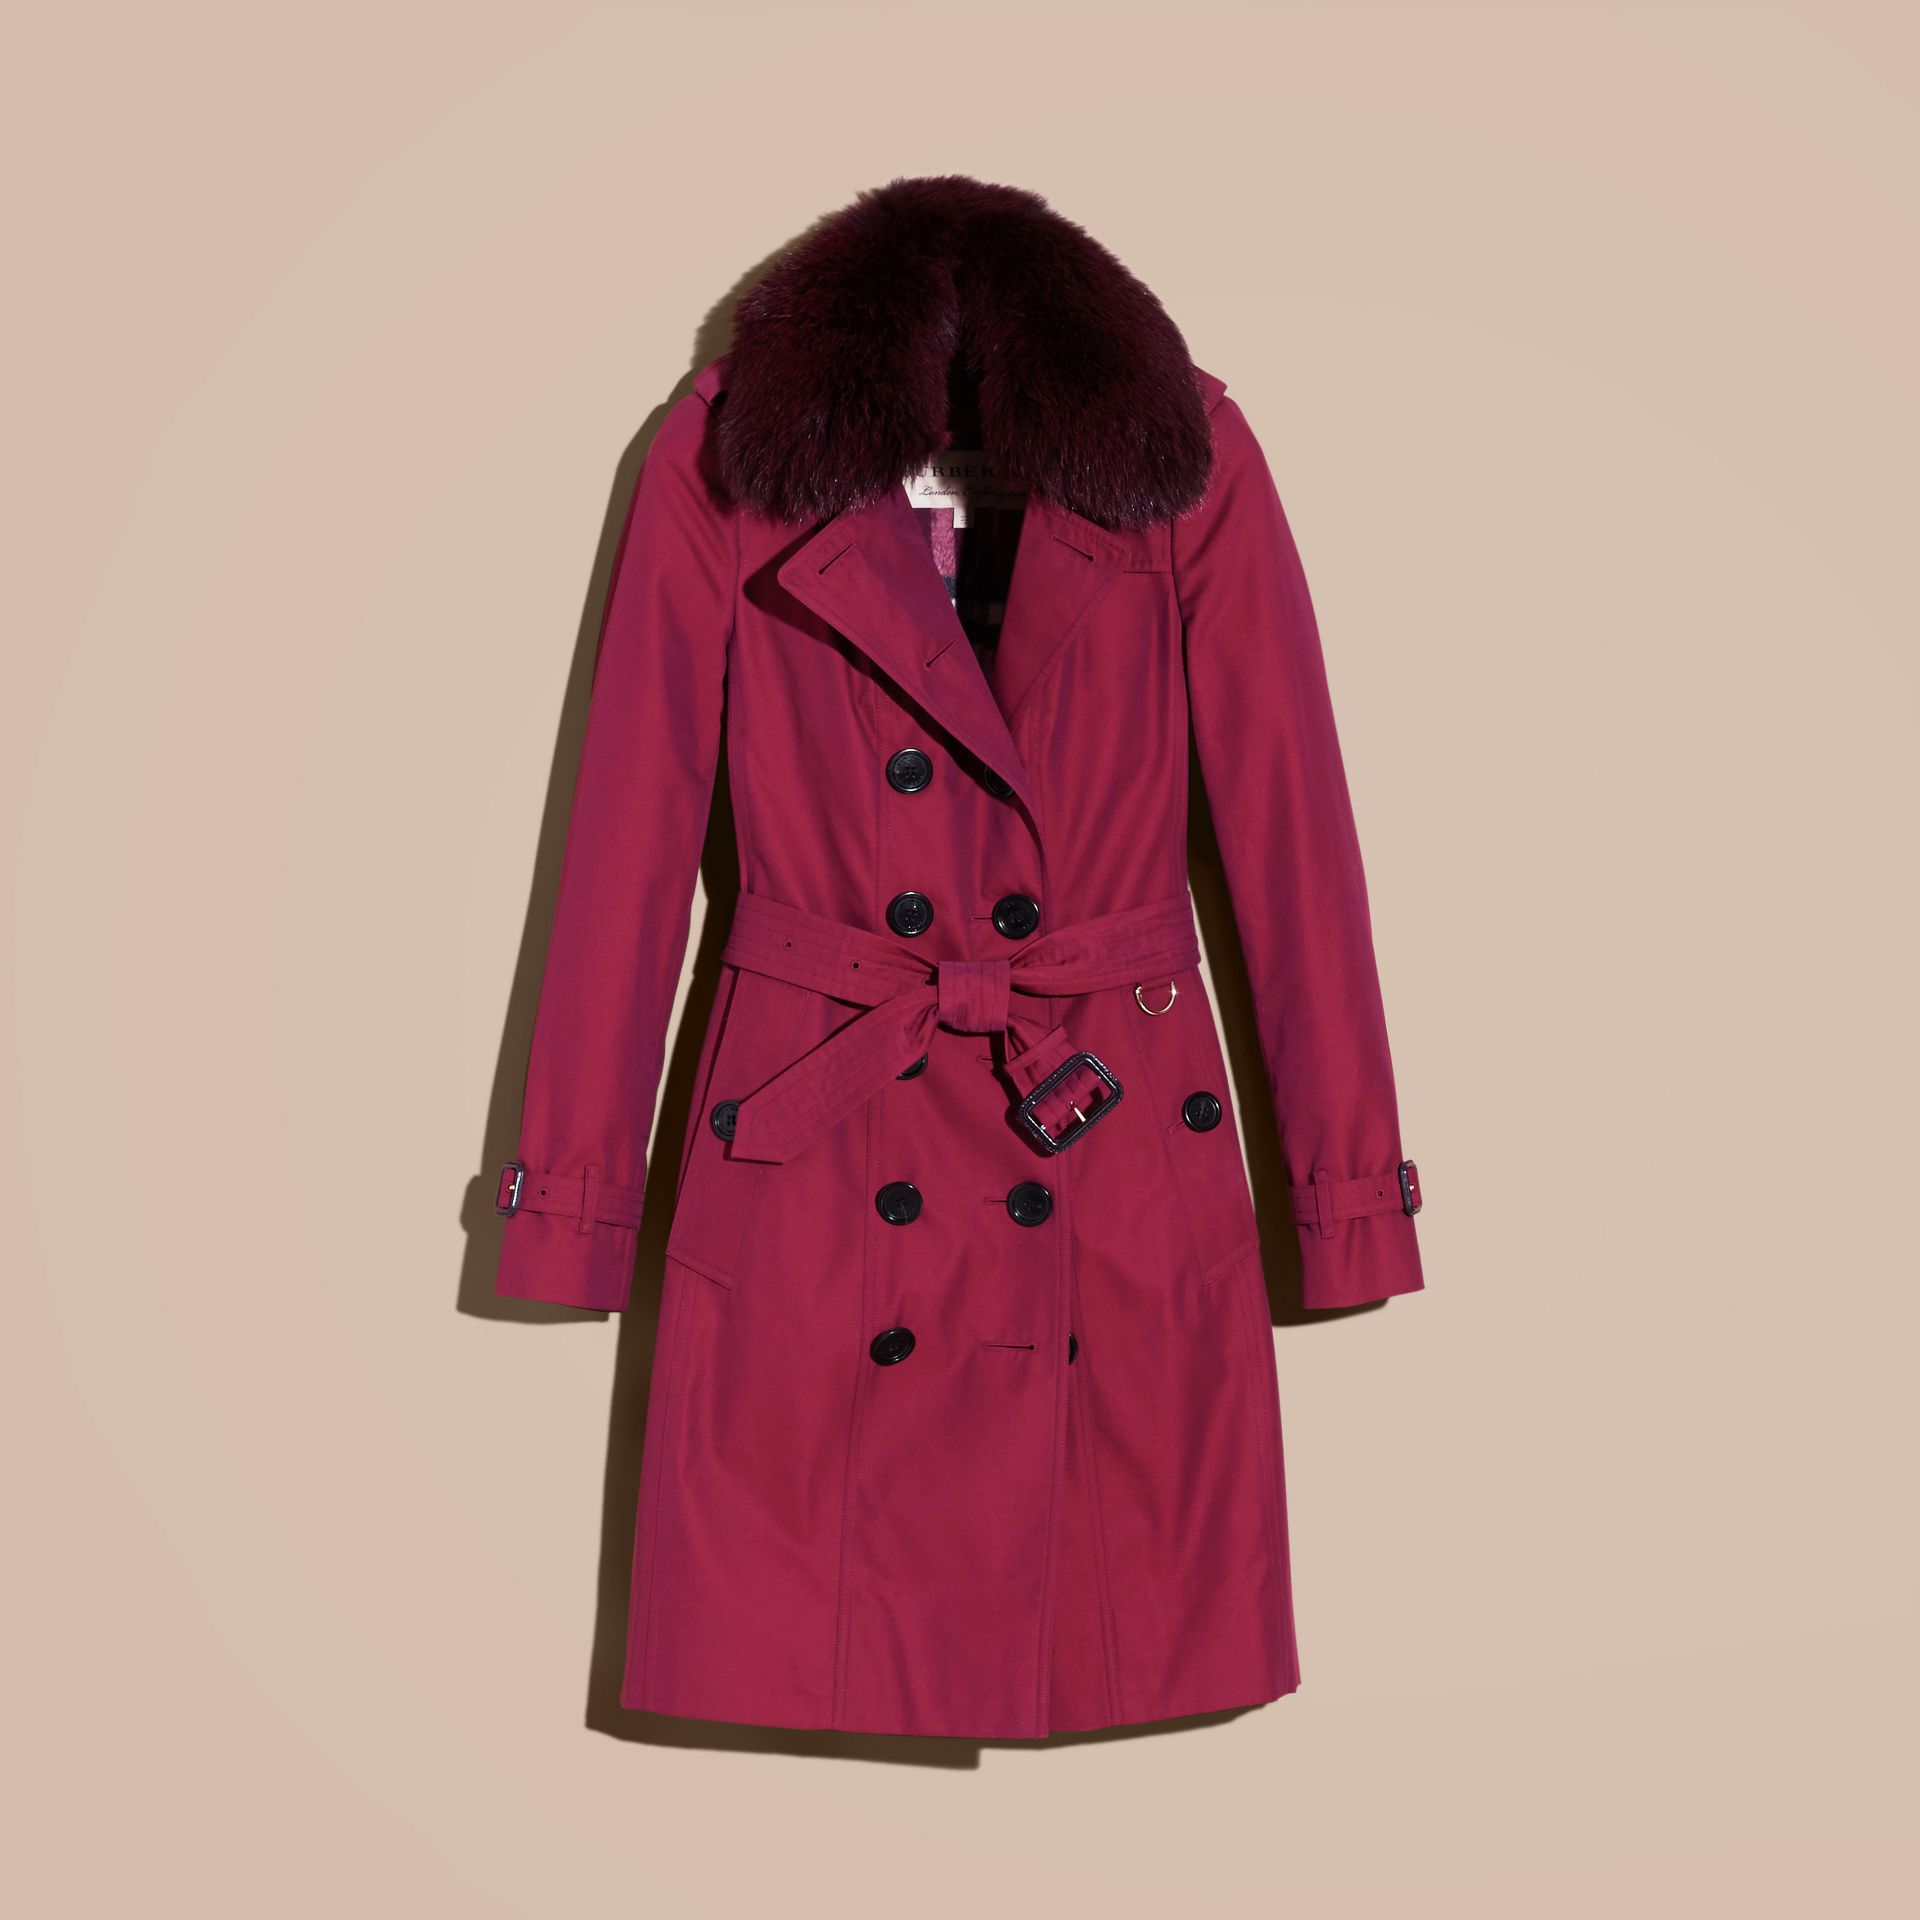 Crimson Trench-coat en gabardine de coton avec bordure en fourrure amovible Crimson - photo de la galerie 4